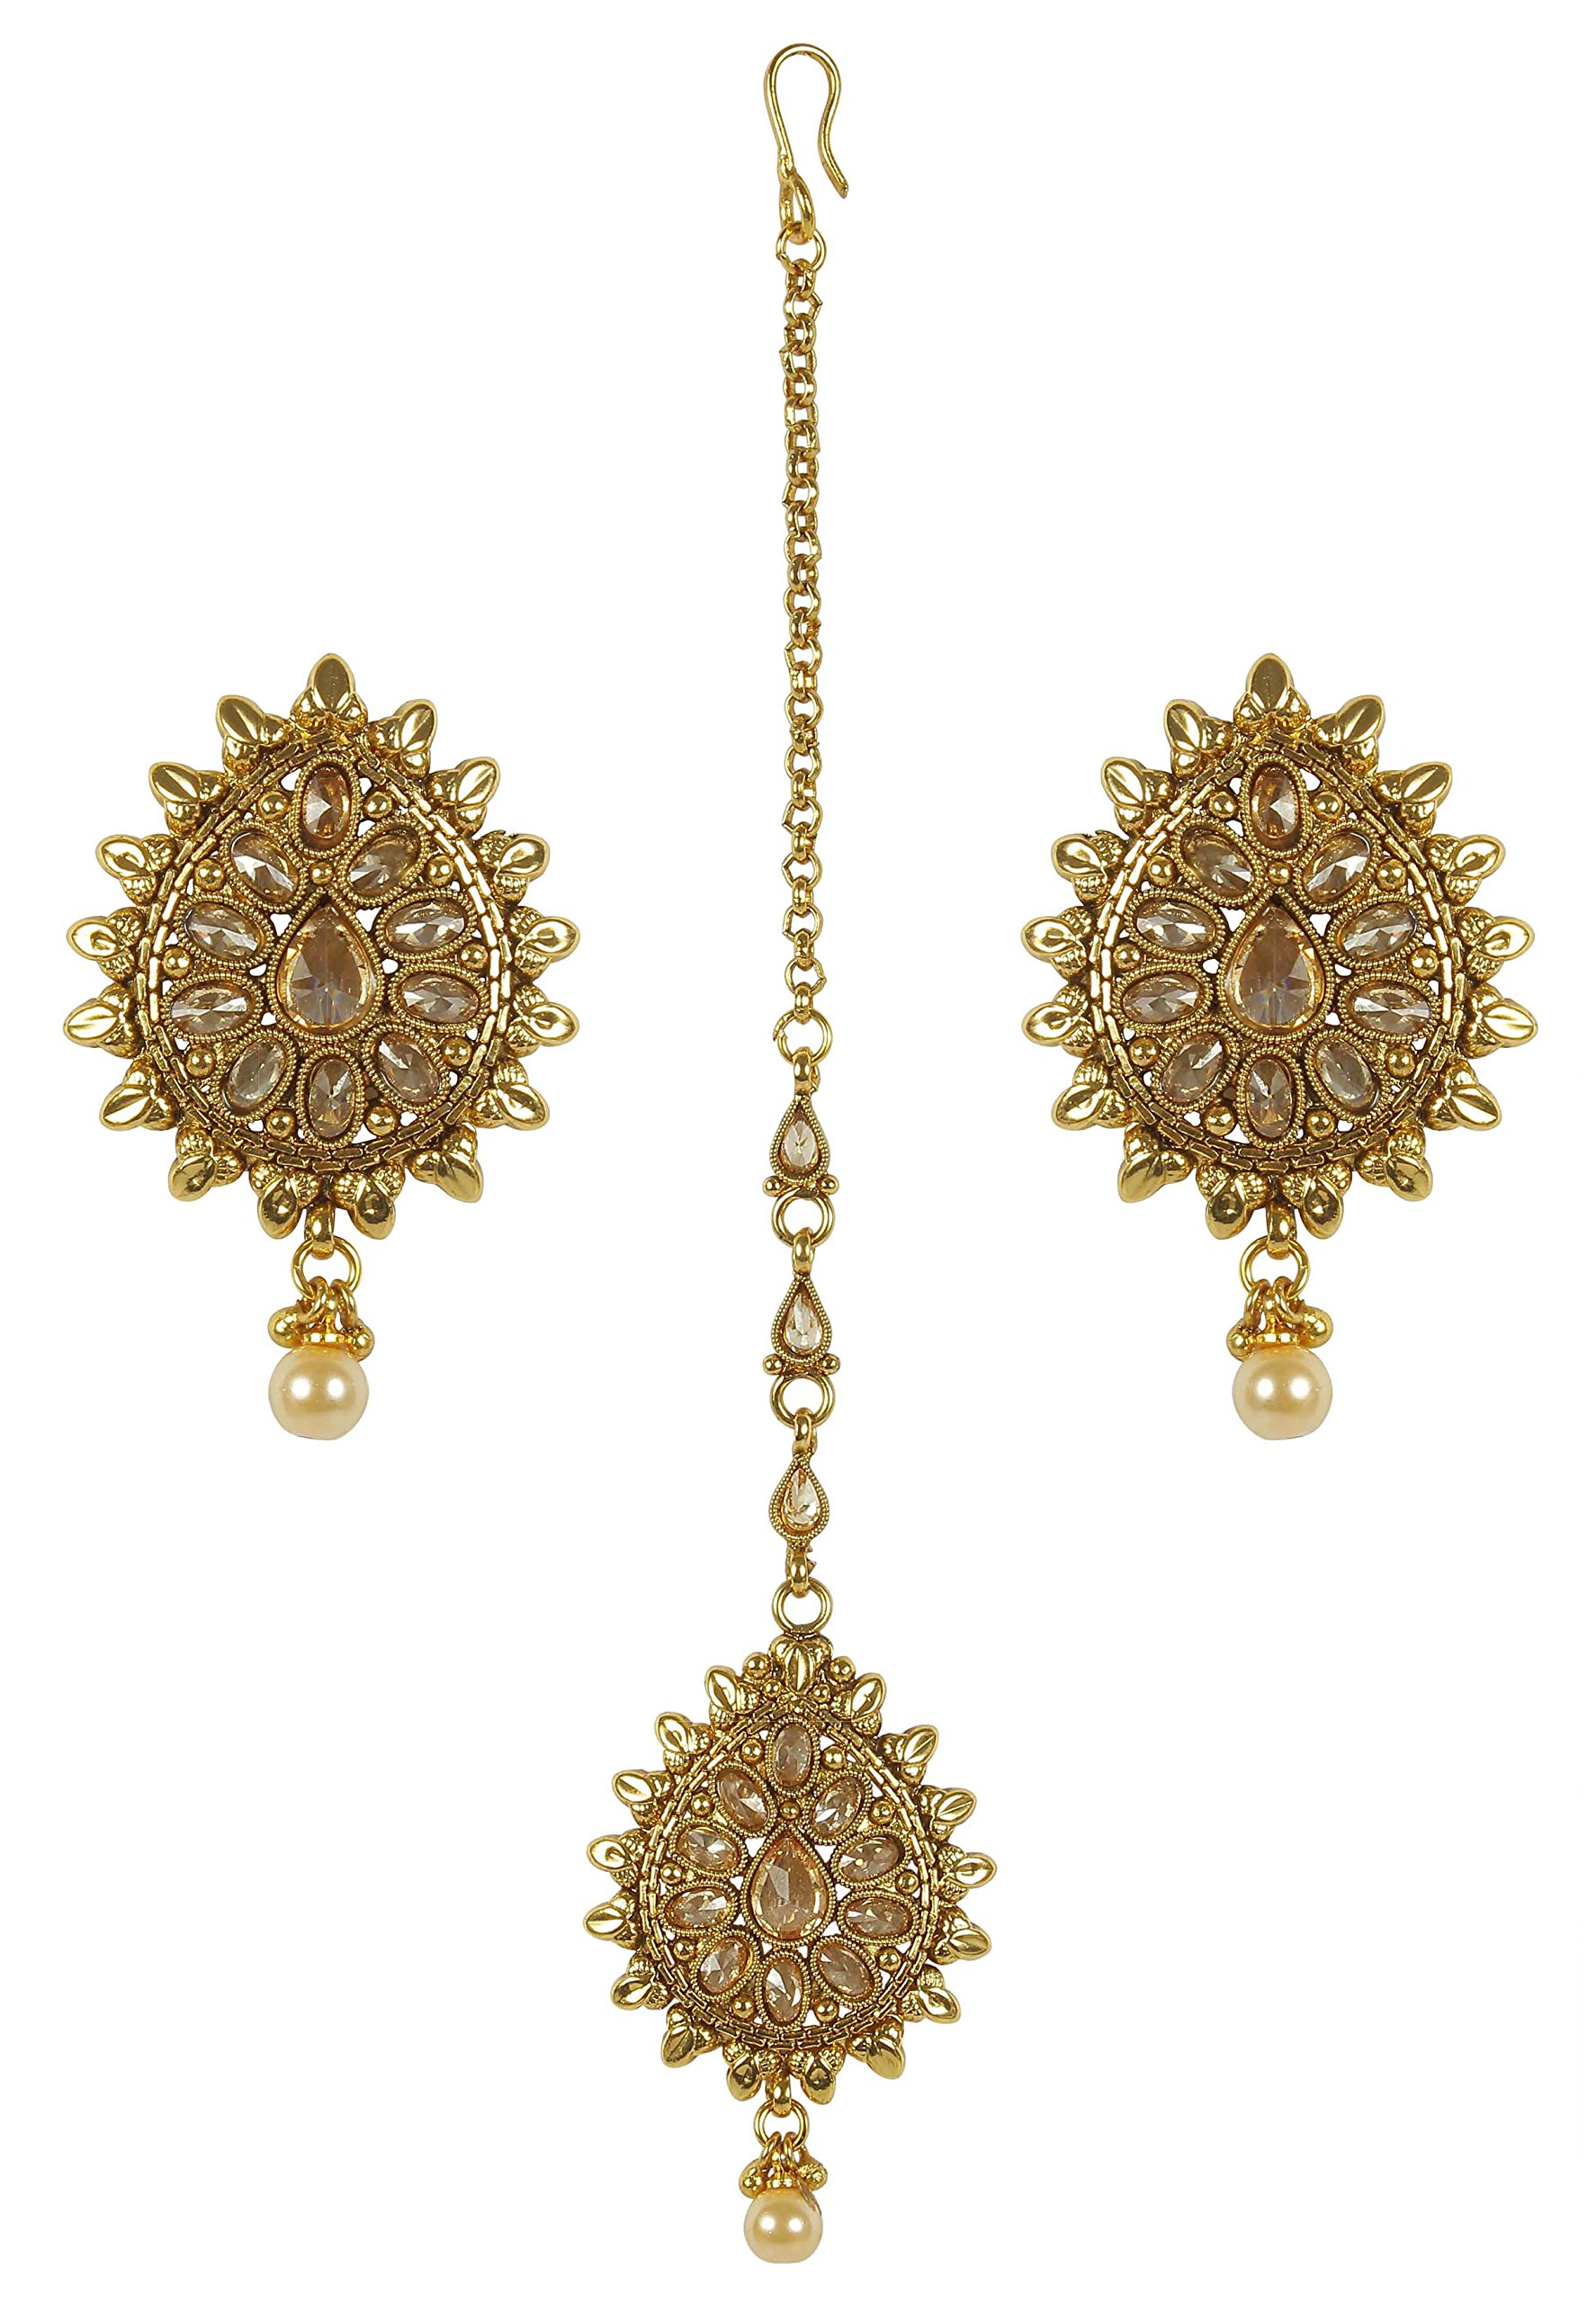 MUCH-MORE Indian Gold Plated Traditional Beautiful Multi Stone Earring with mang Tikka Jewelry for Women (ERMT-2306)